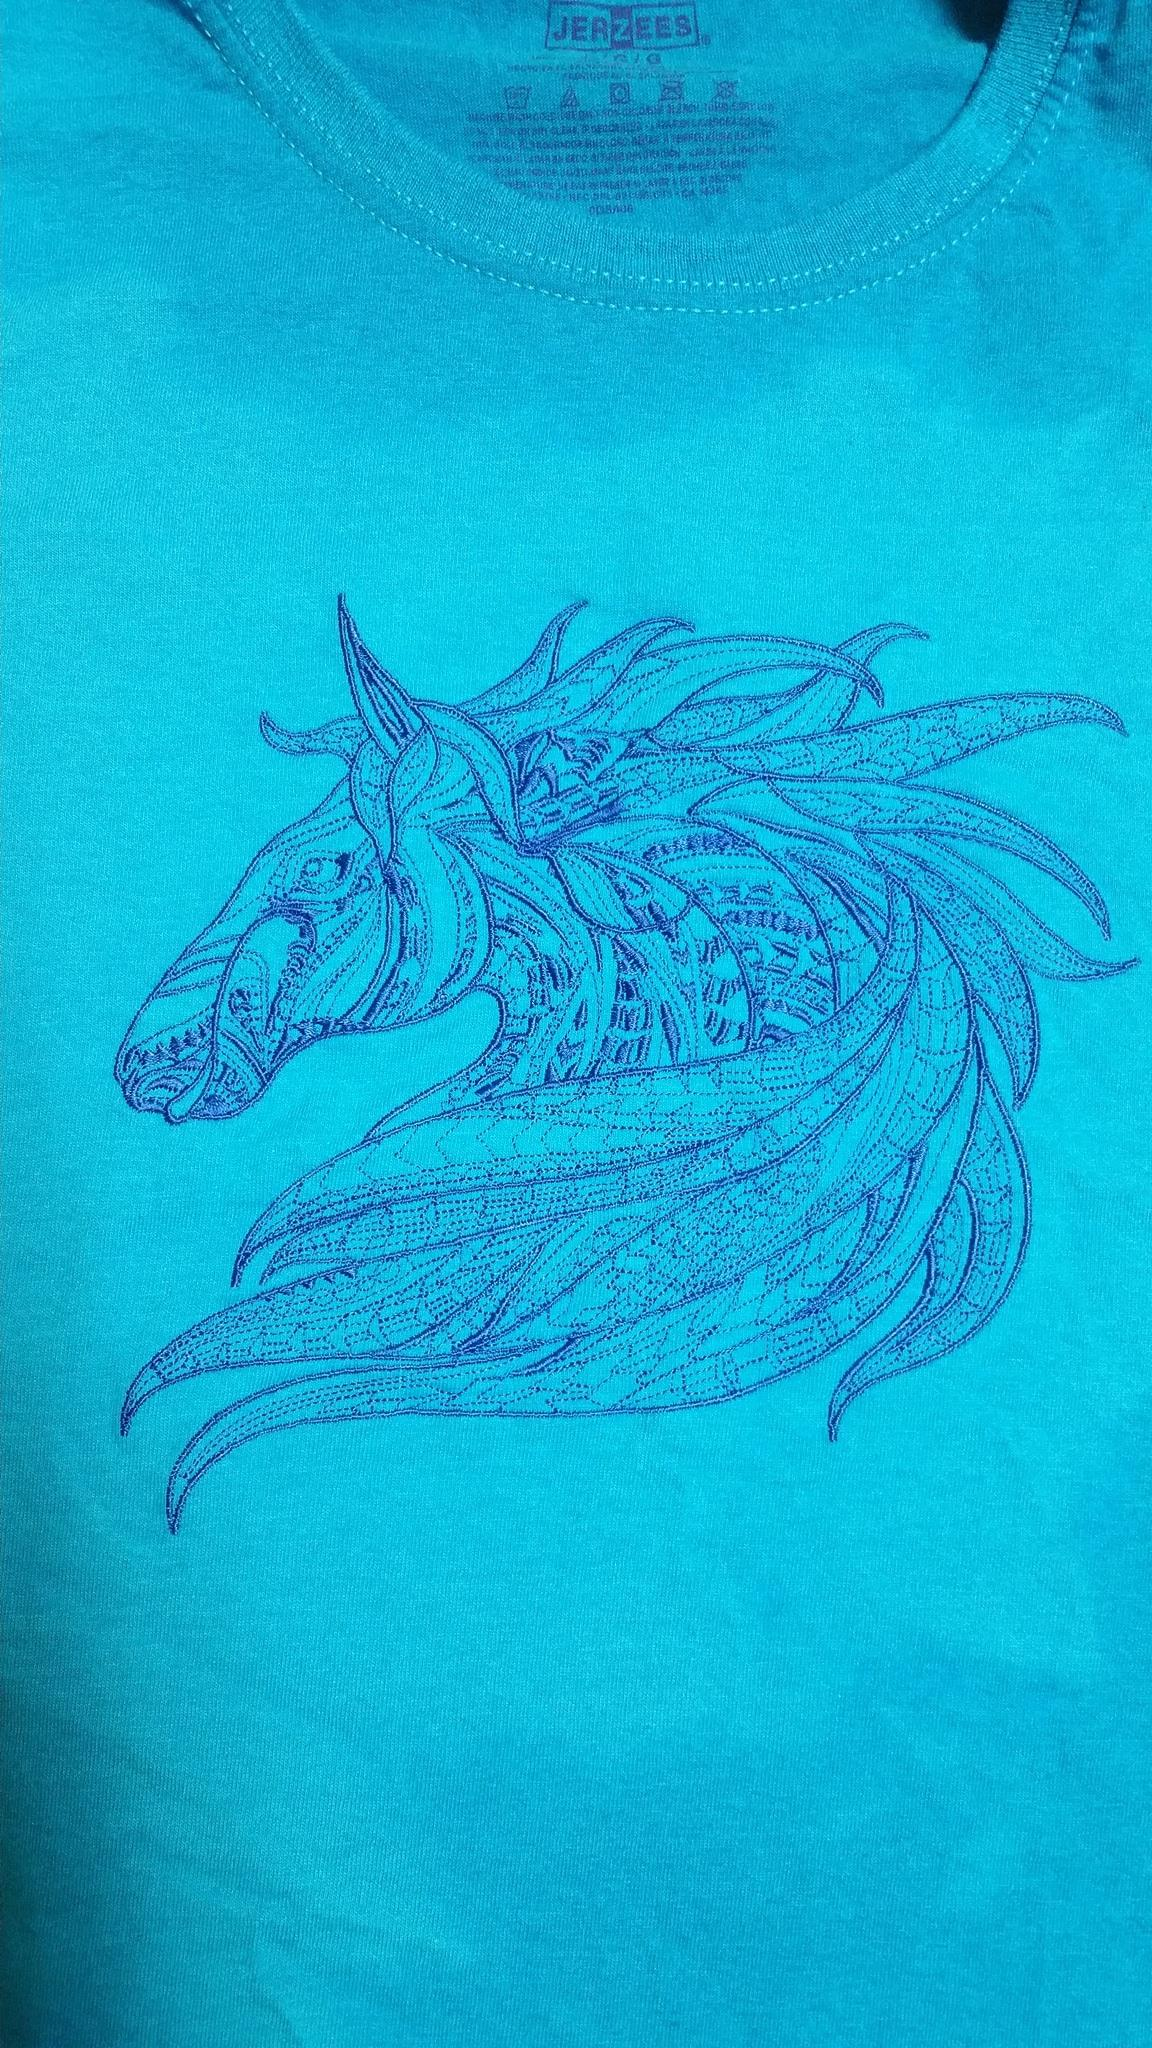 Cotton t-shirt with Mosaic horse embroidery design